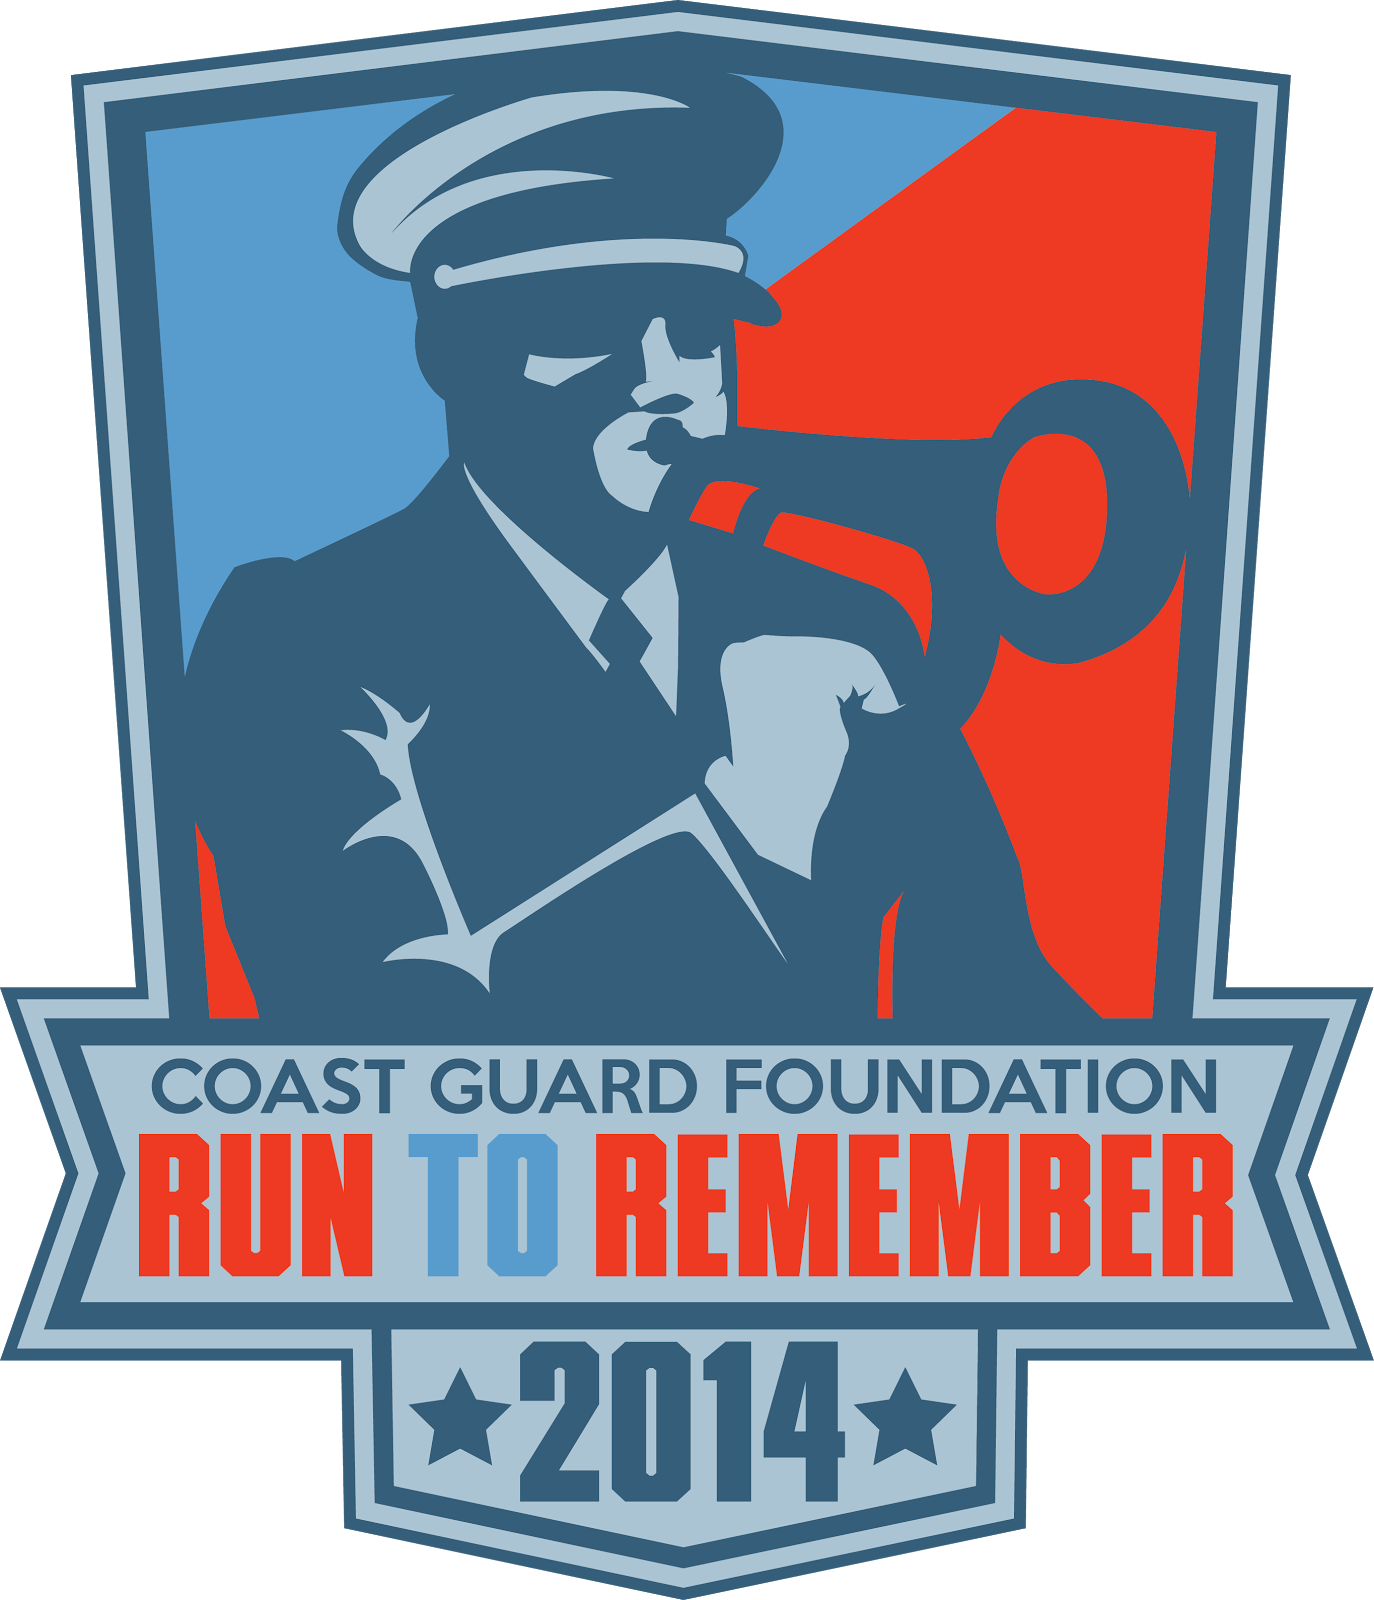 CG Run to Remember